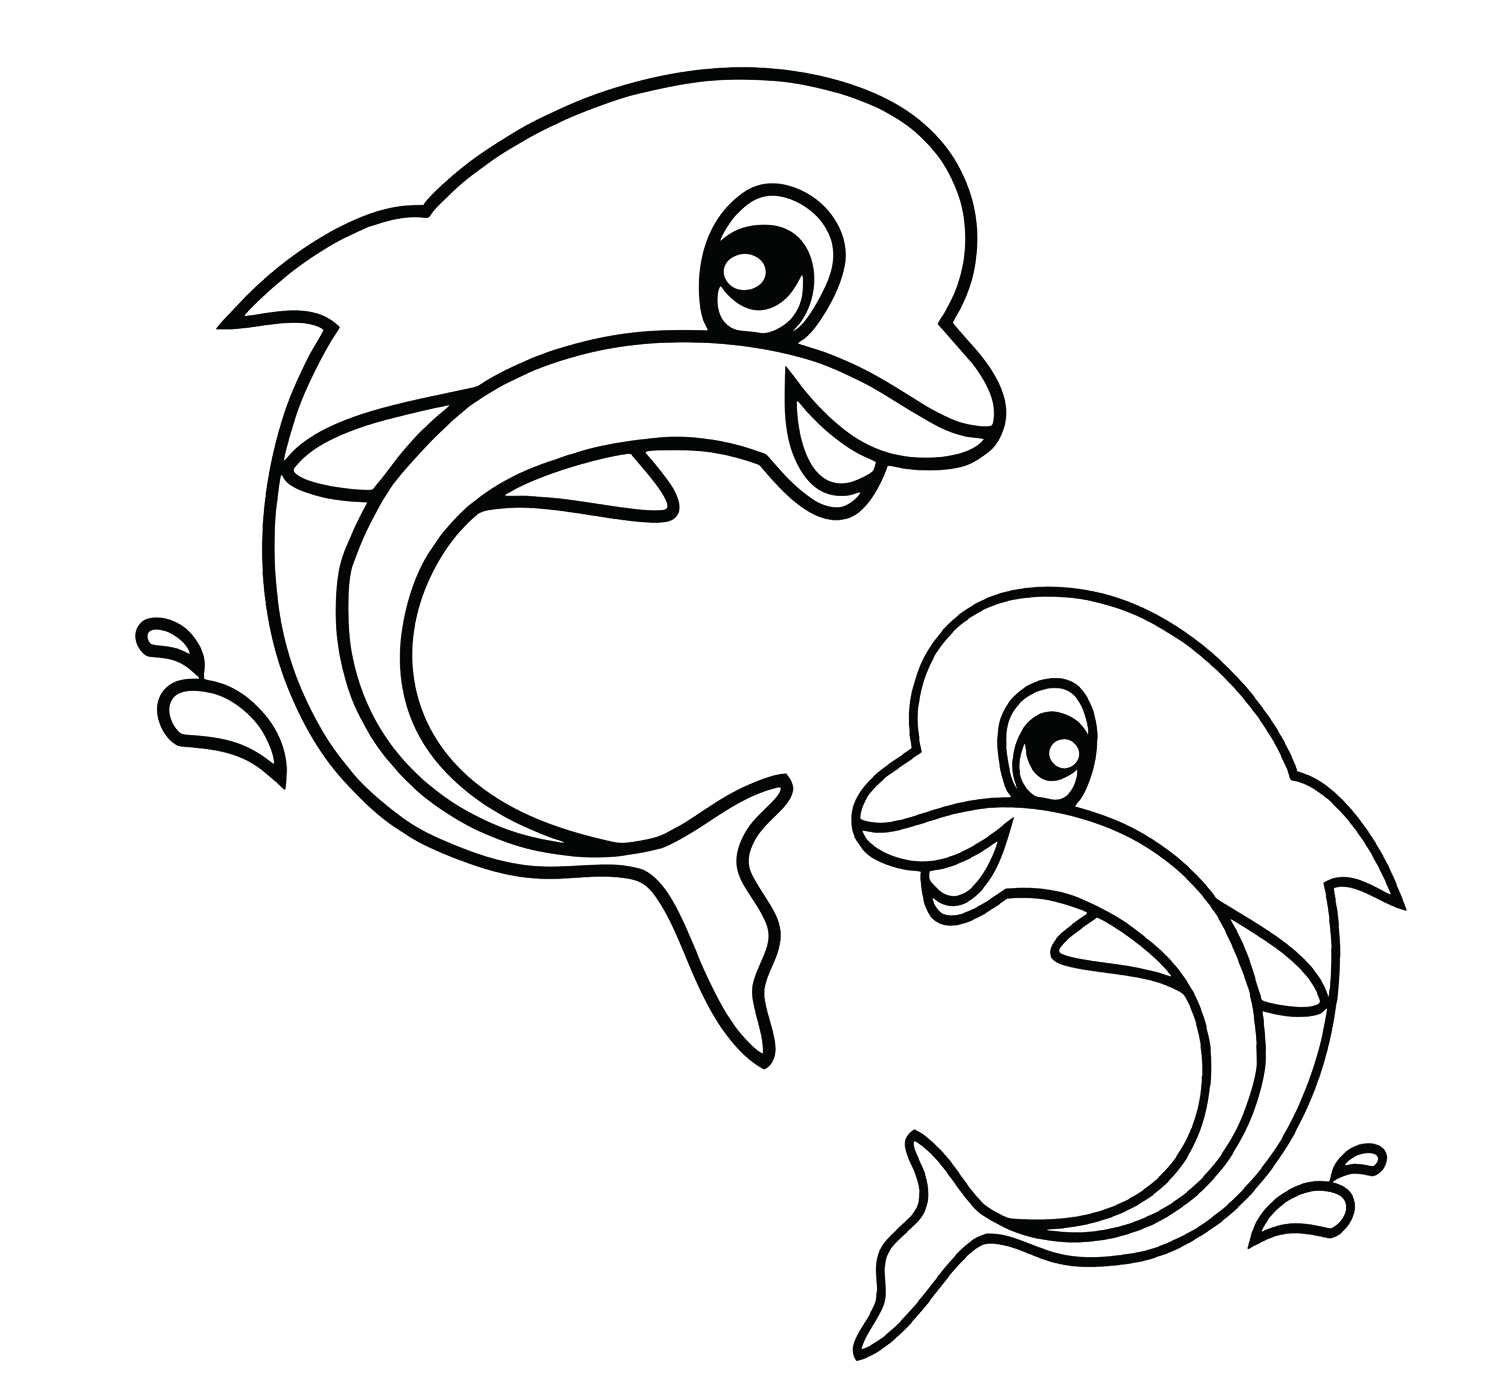 Coloring Pages You Can Color Now : Best free i love you babe coloring pages images